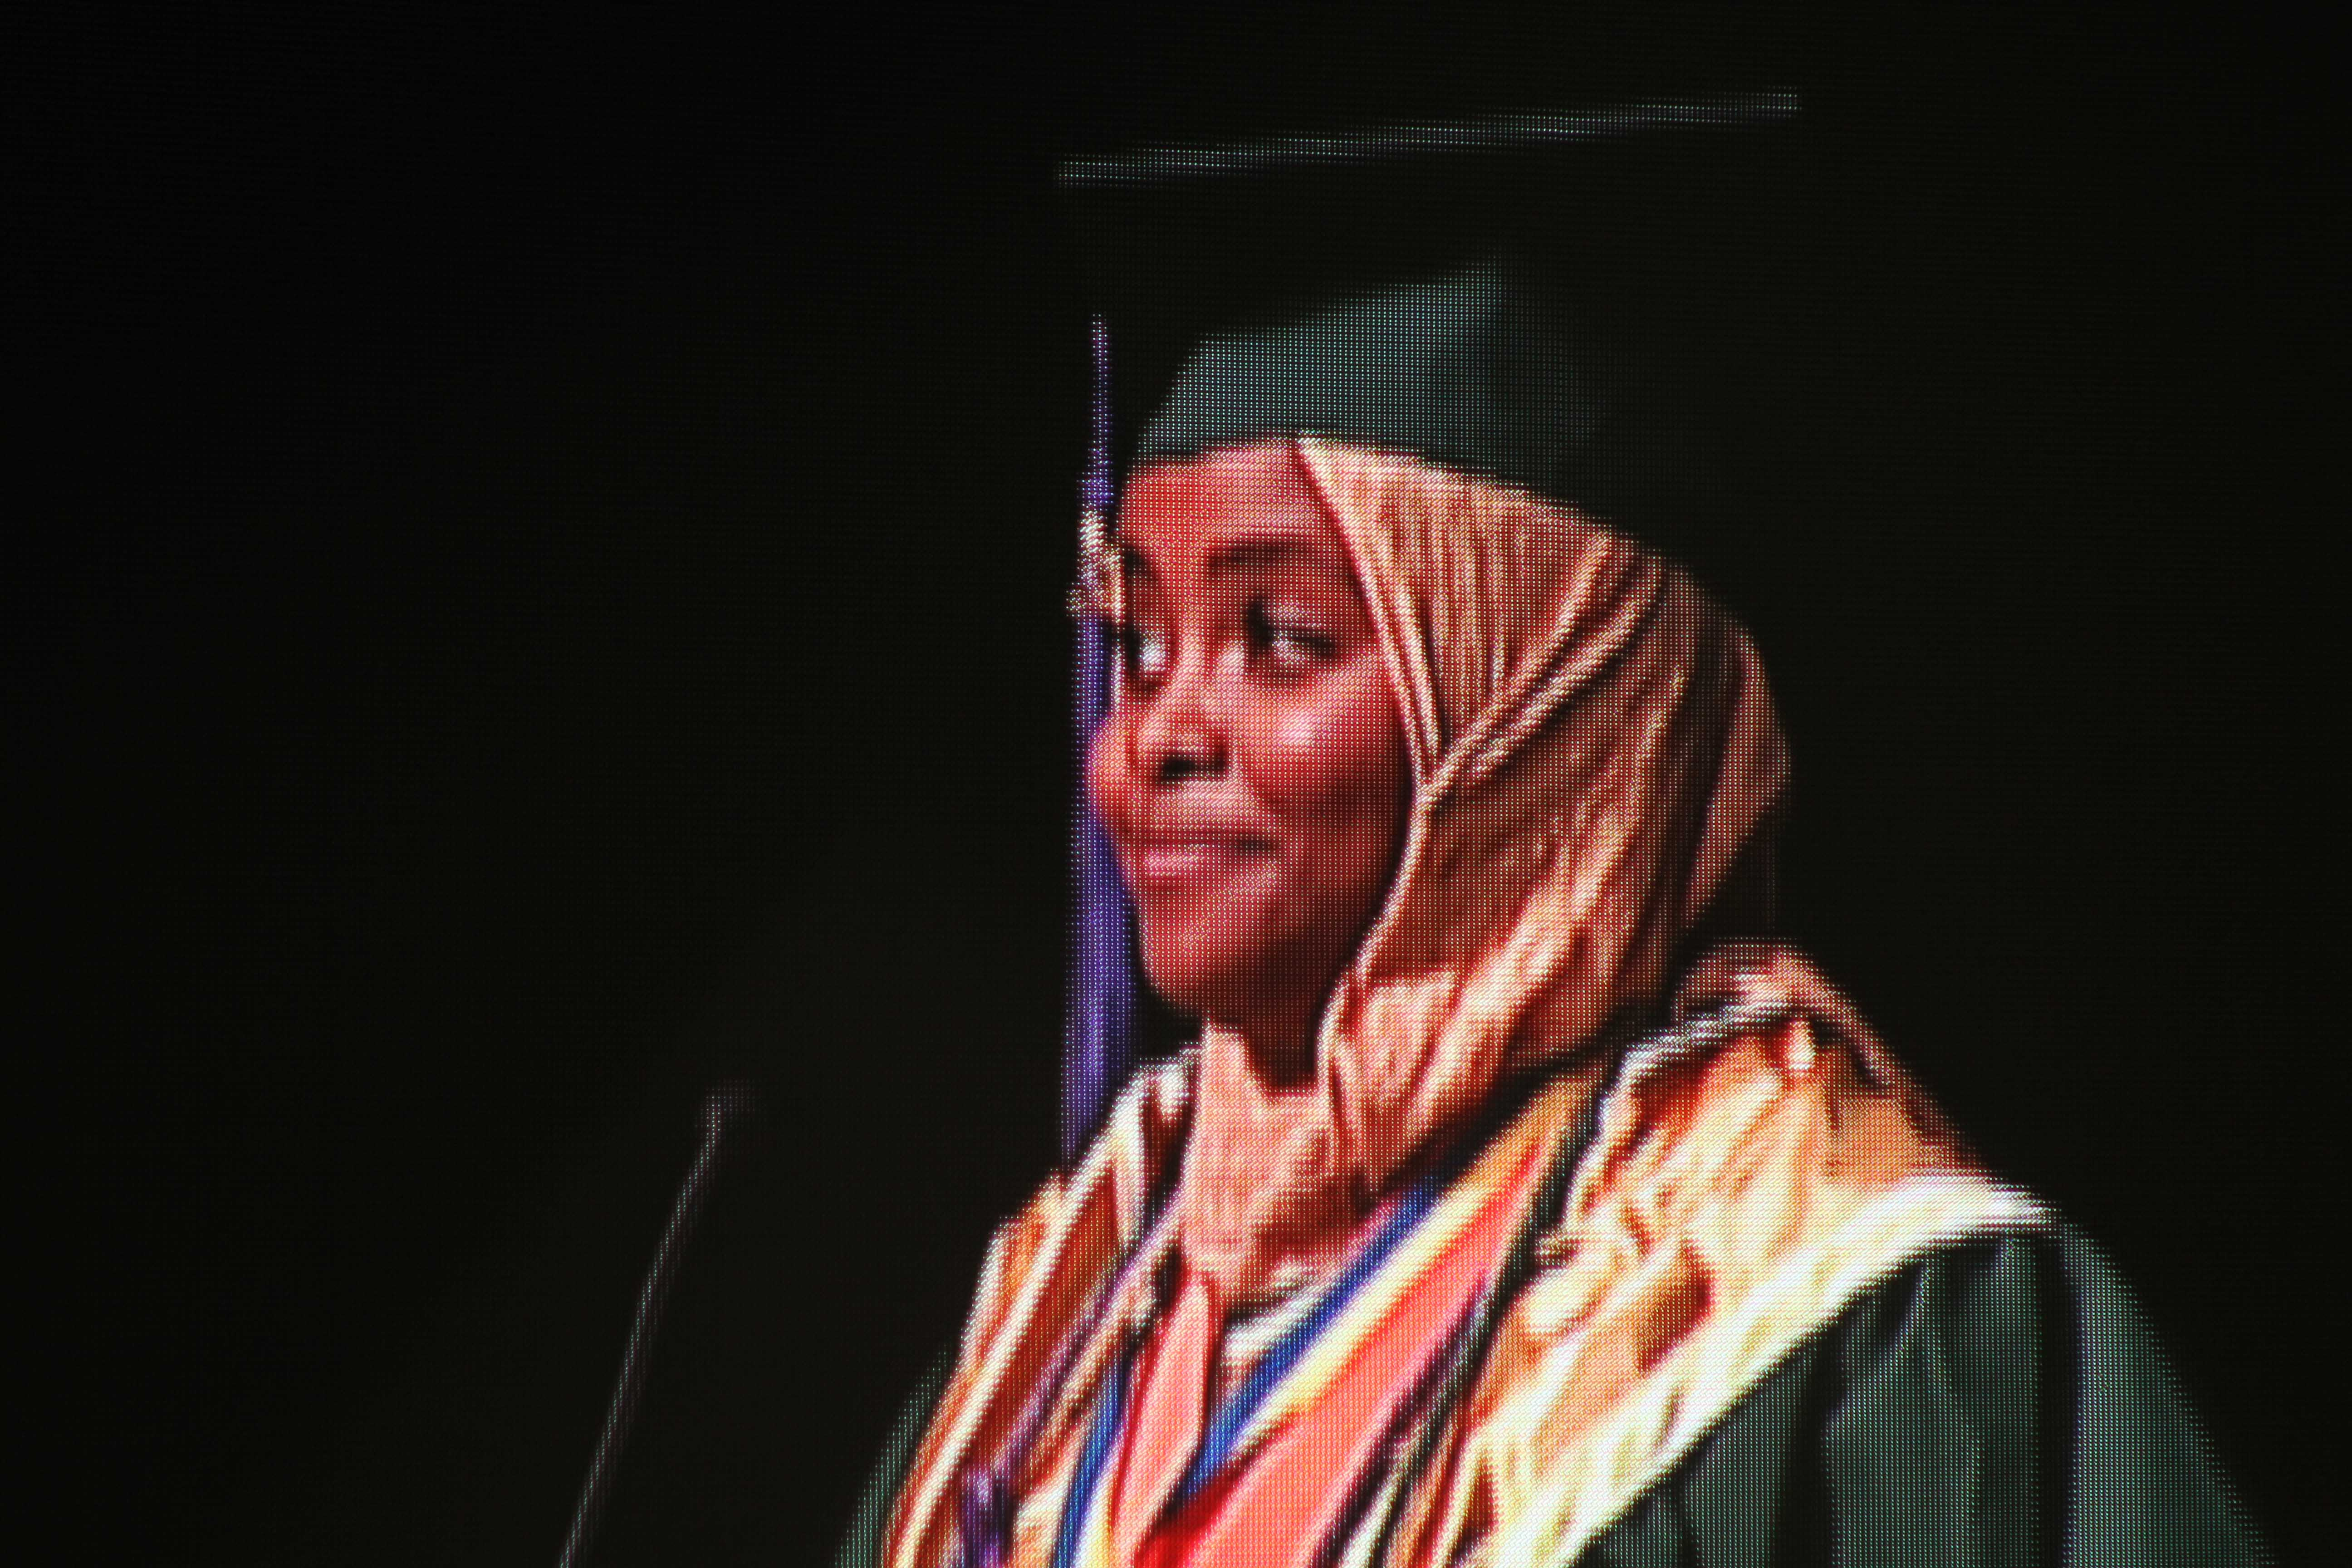 Senior Class President Fatima Elsheikh encourages her classmates to take on challenges.